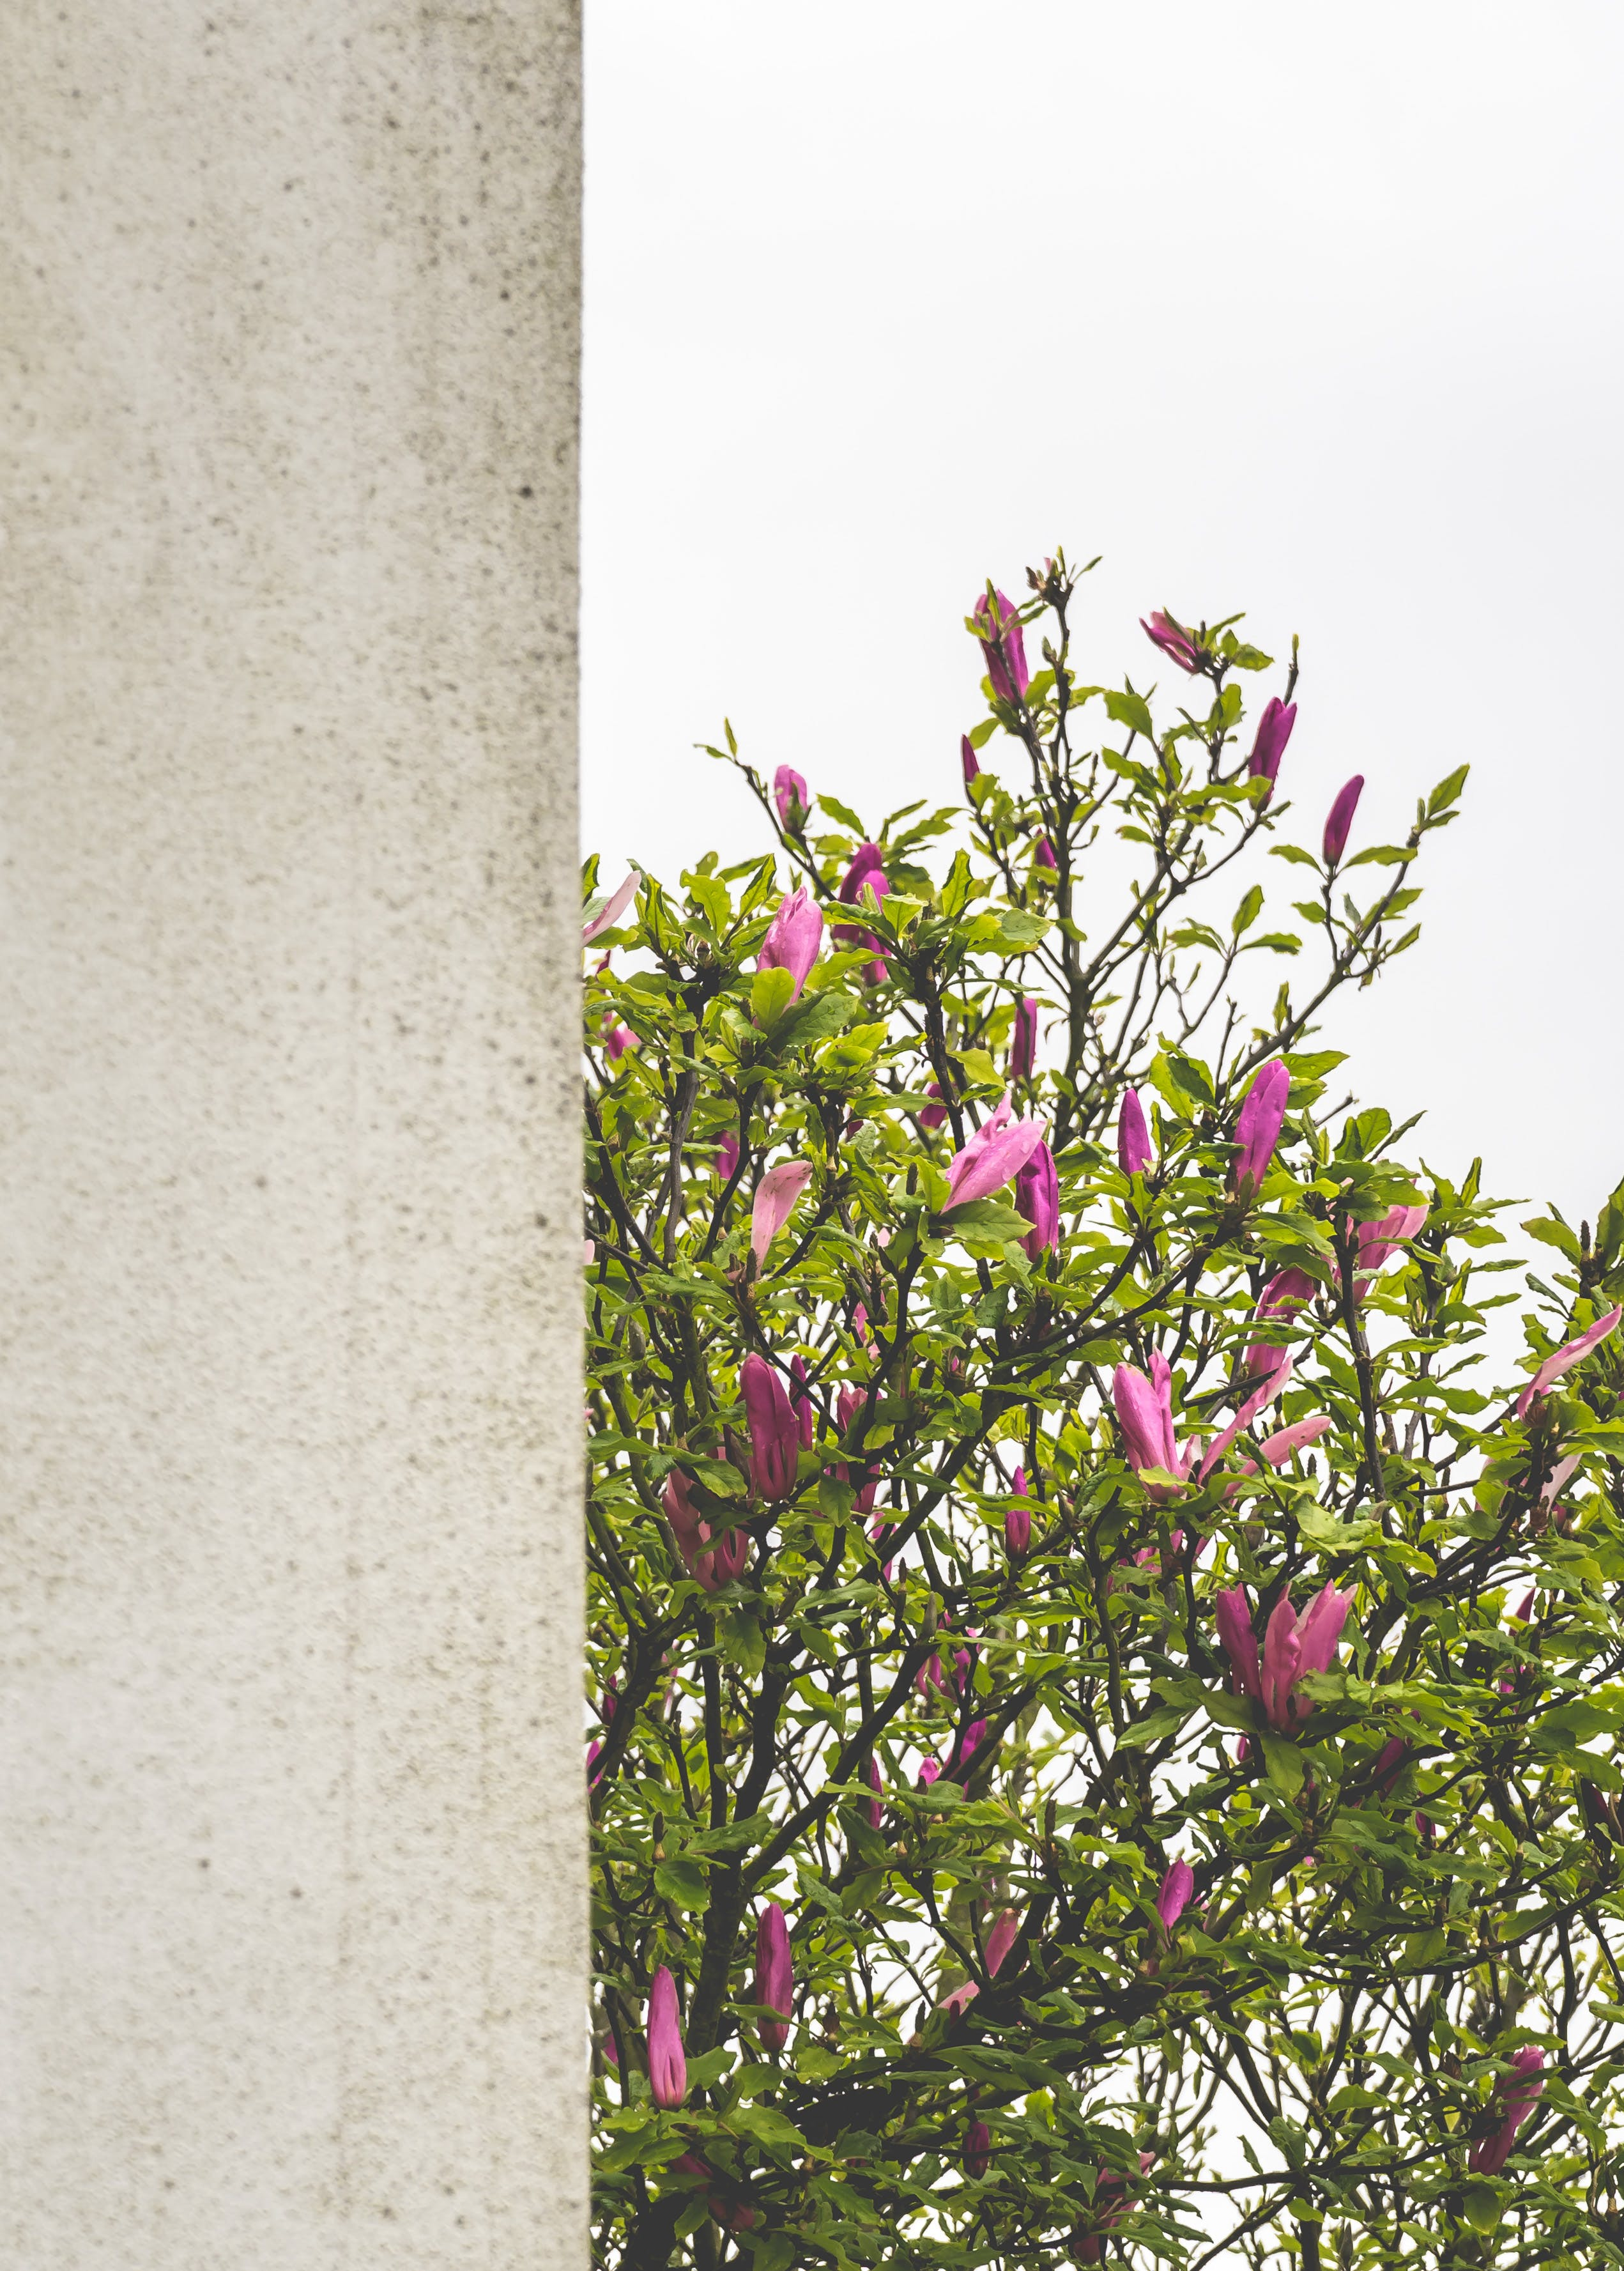 Free stock photo of weather, flowers, spring, faded